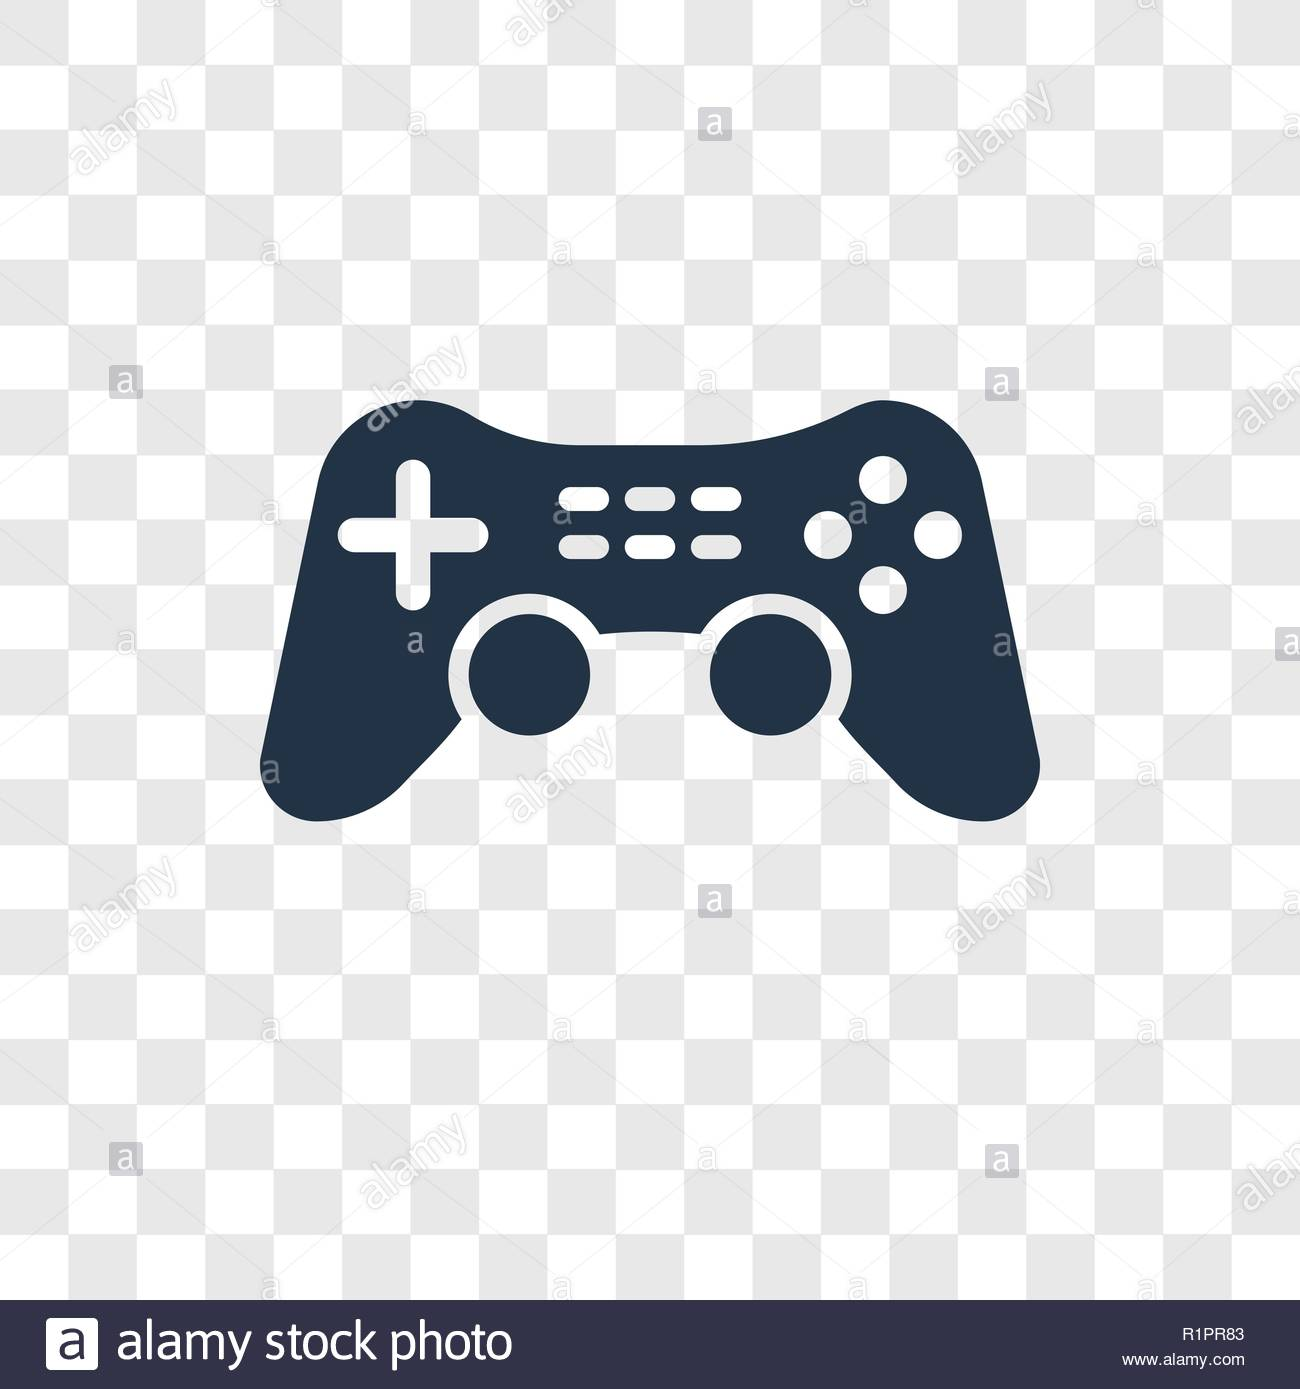 Game Controller Cross vector icon isolated on transparent 1300x1389